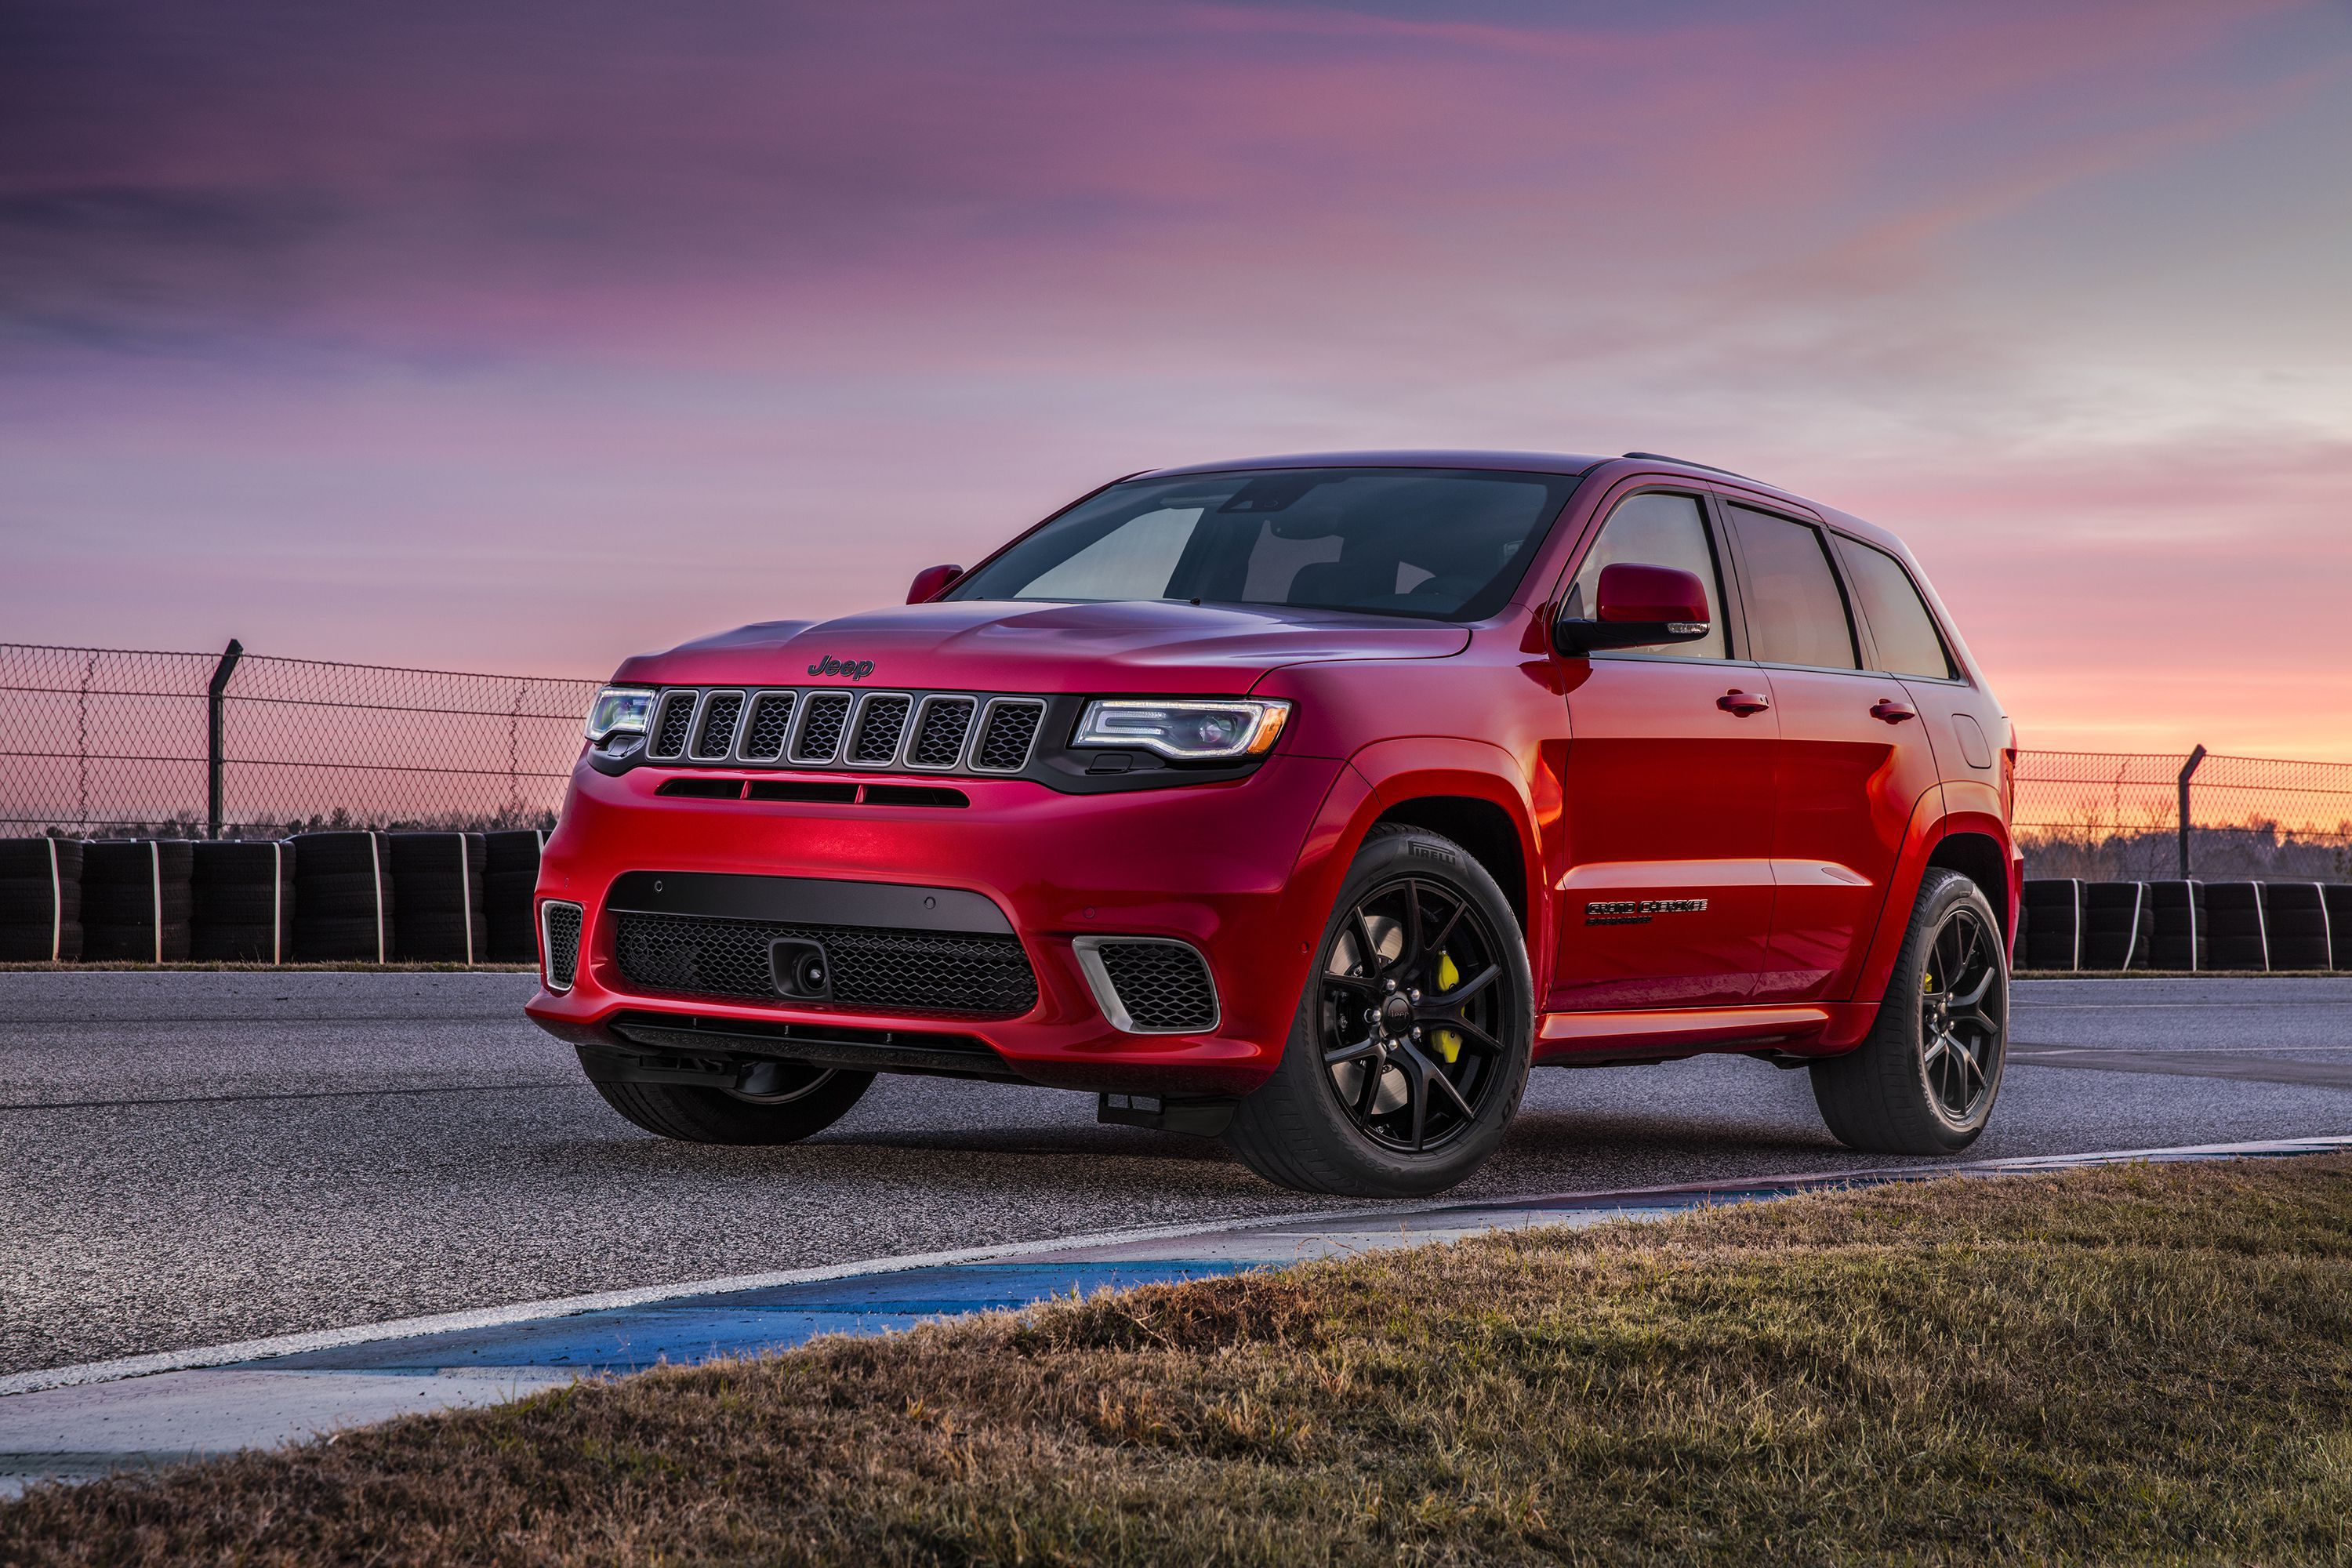 2018 Jeep Grand Cherokee Trackhawk Hd Cars 4k Wallpapers Images